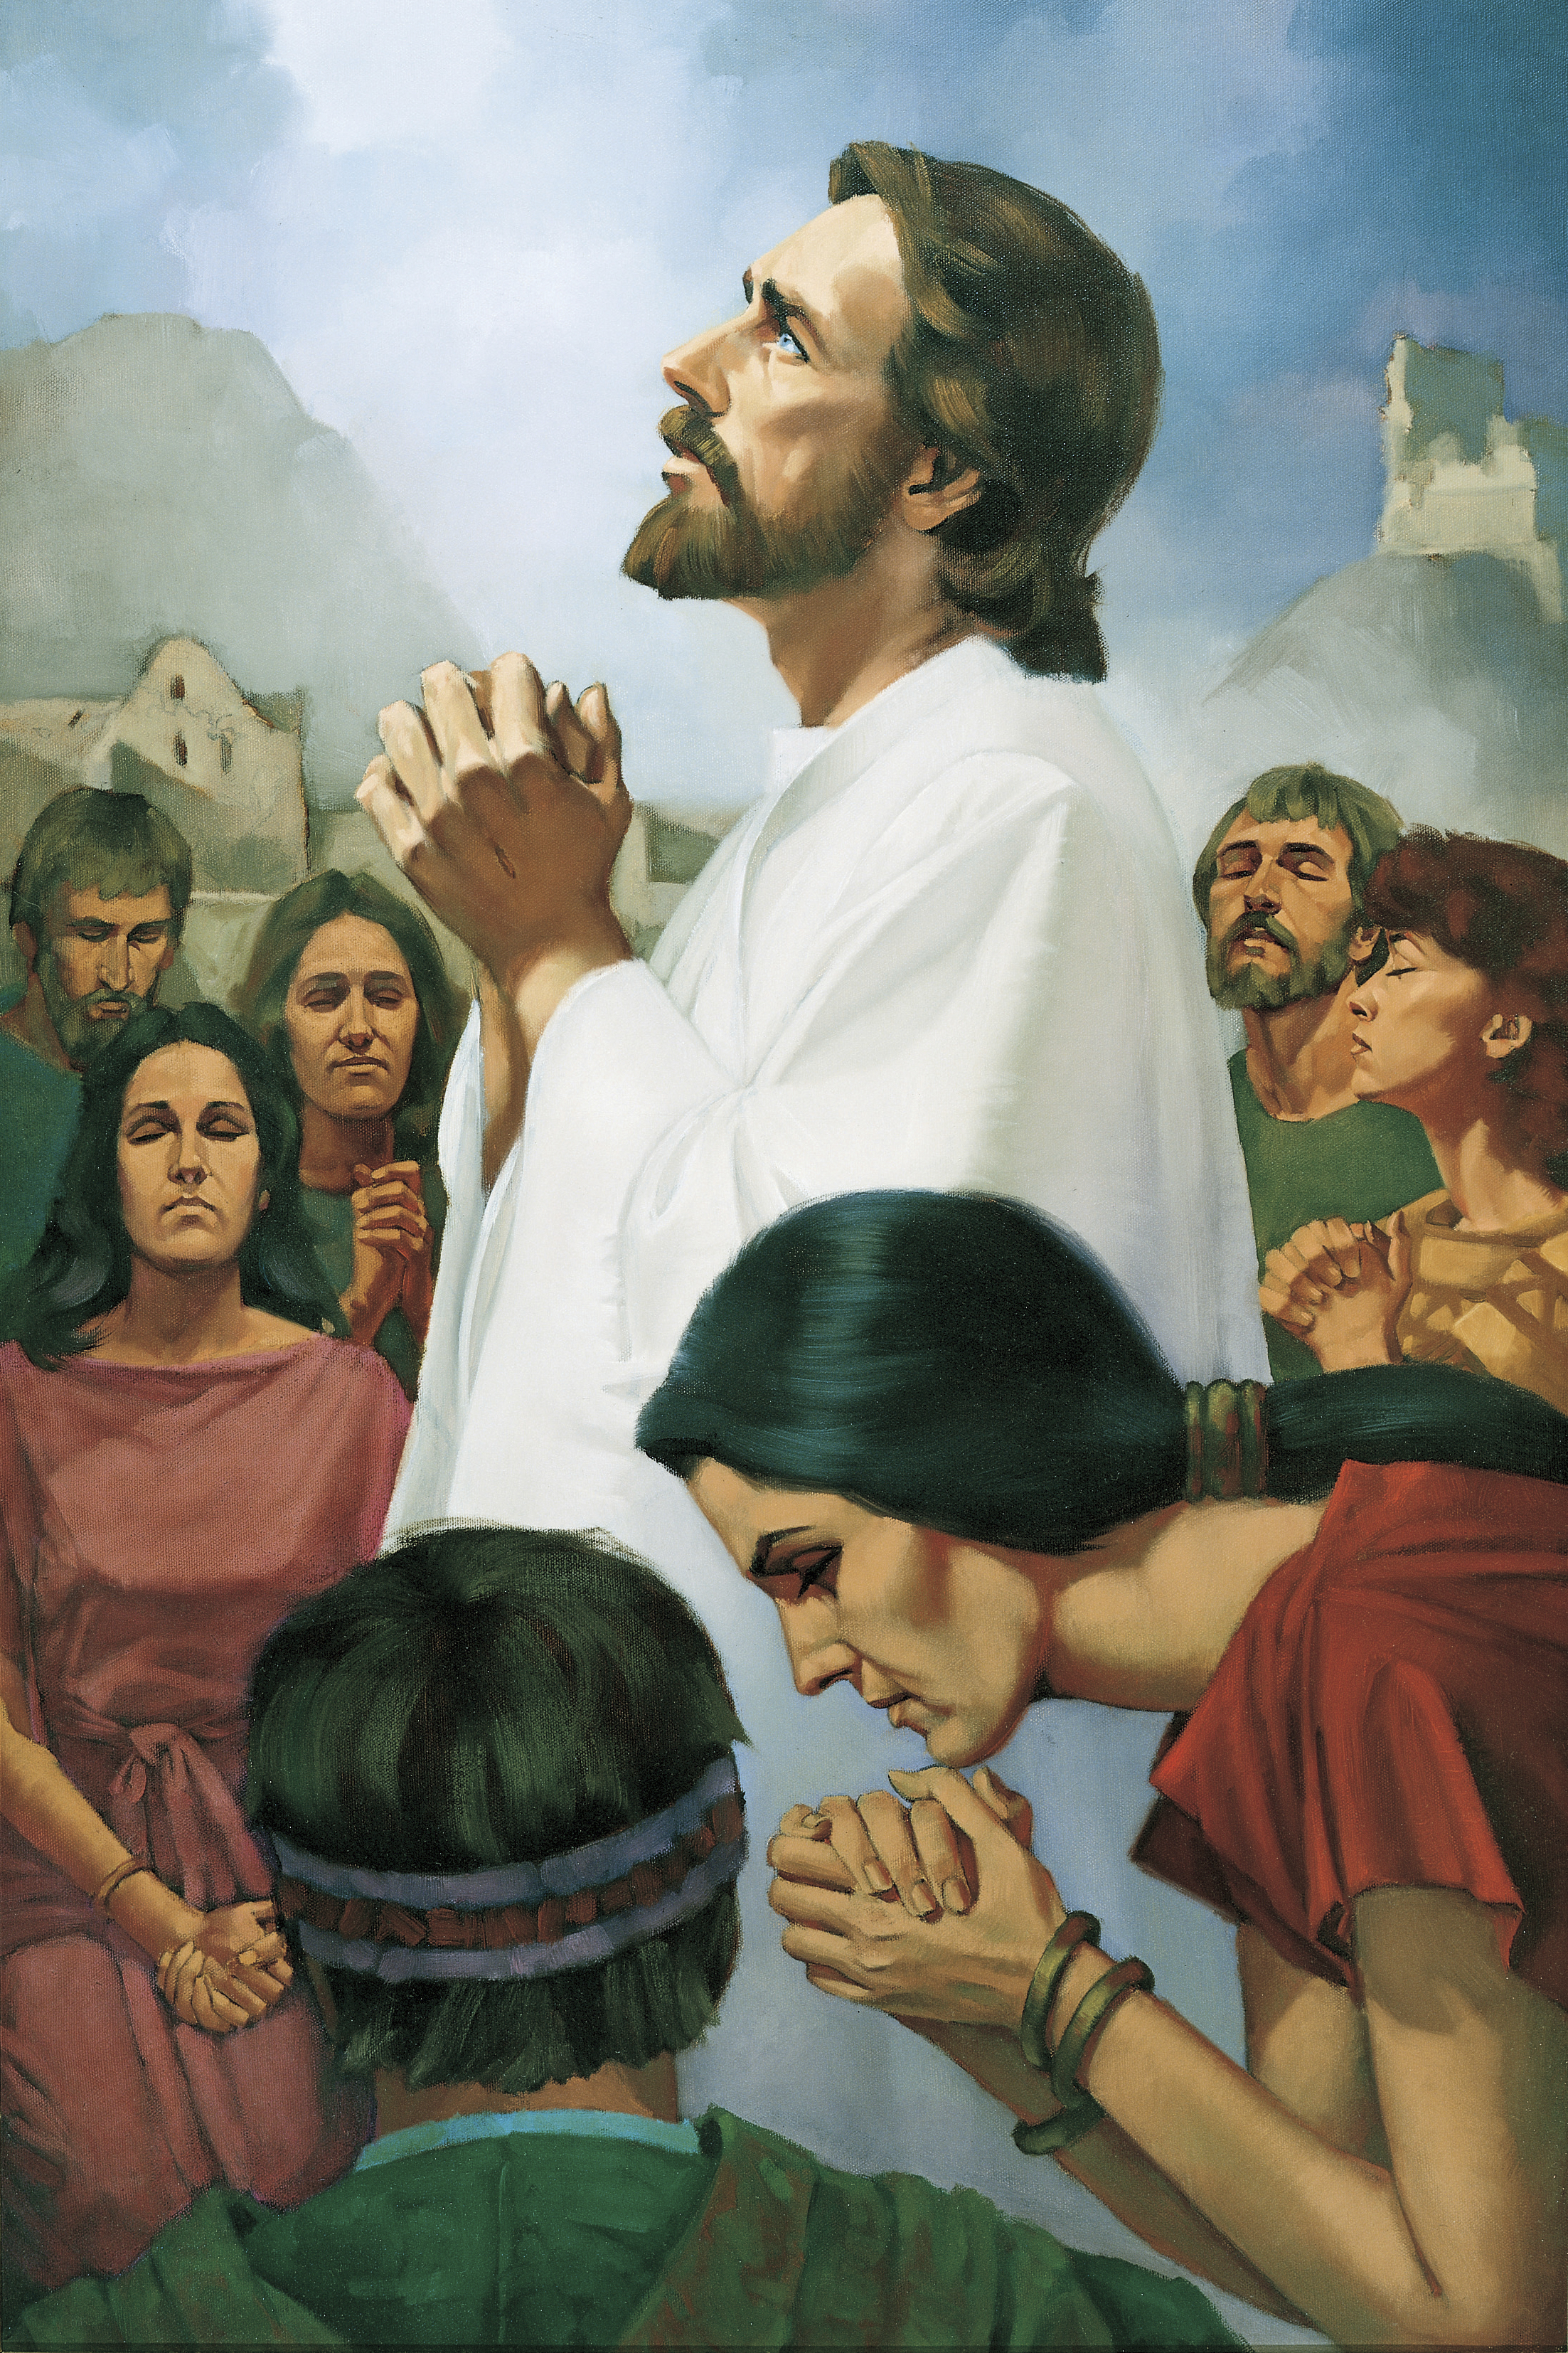 Christ Praying with the Nephites, by Ted Henninger